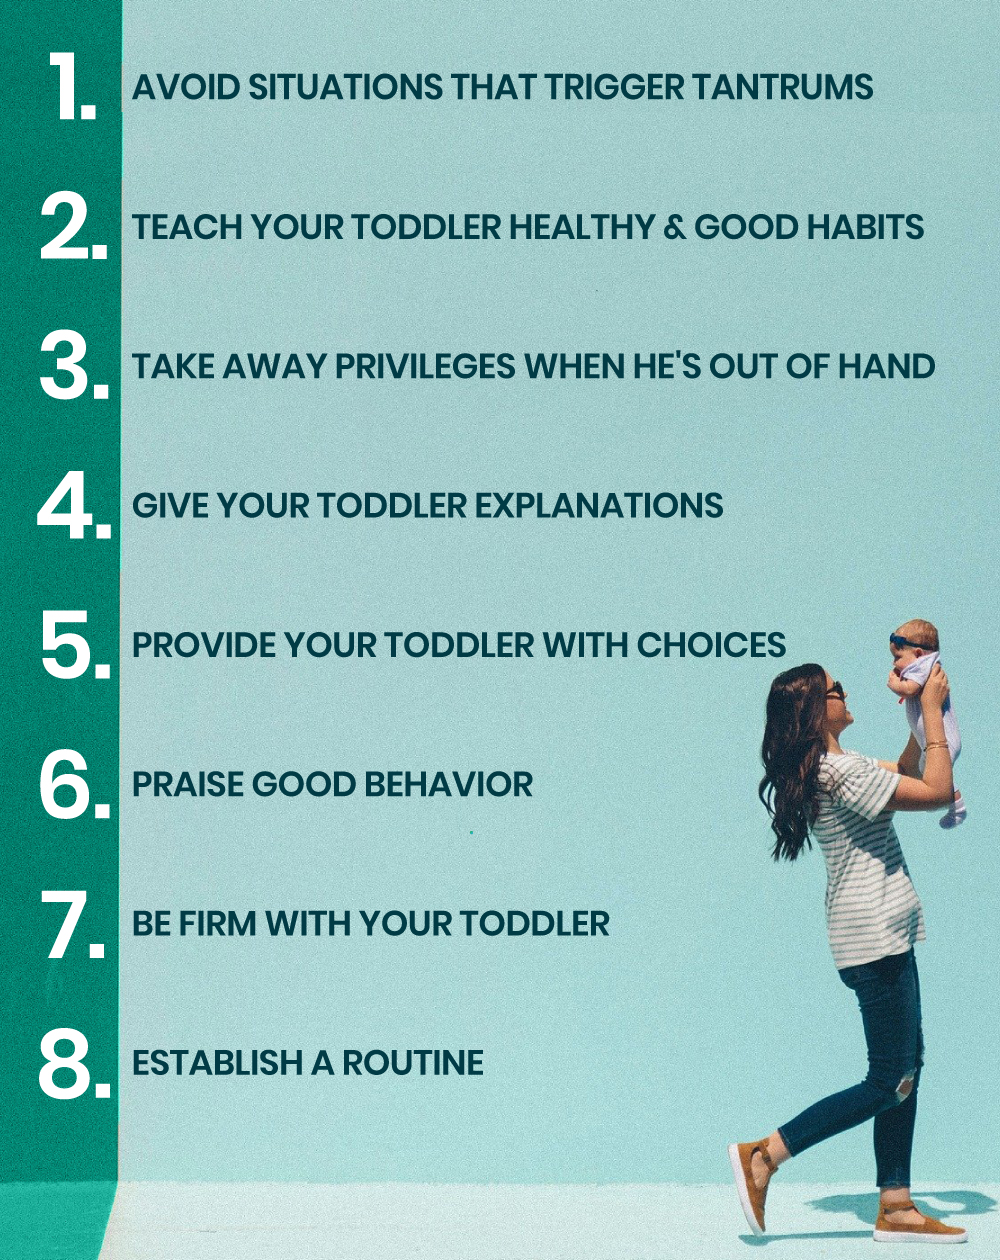 Tips for parenting 2 year olds